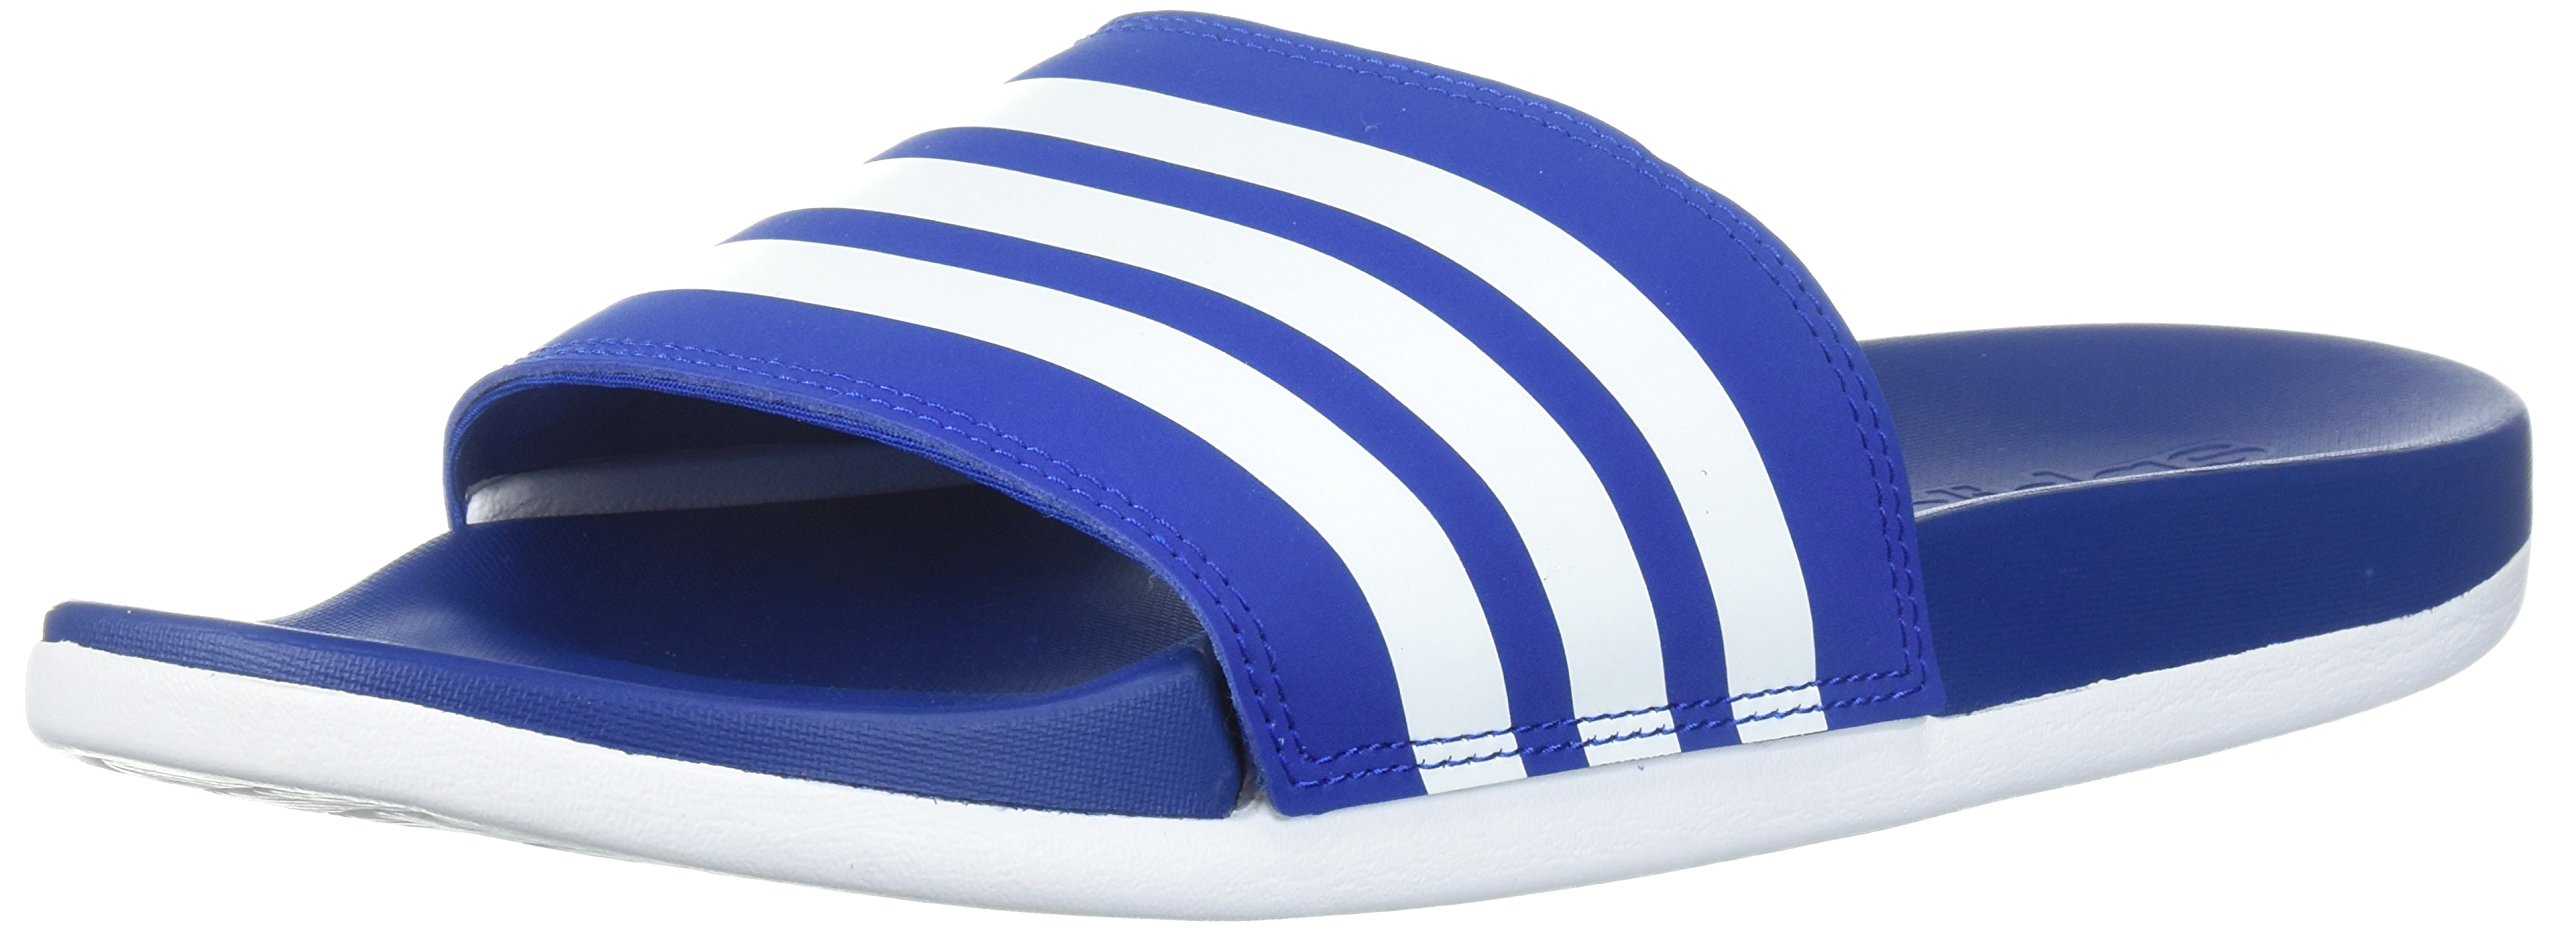 f12c2e409c8e Get Quotations · adidas Men s Adilette Cf+ Slide Sandal